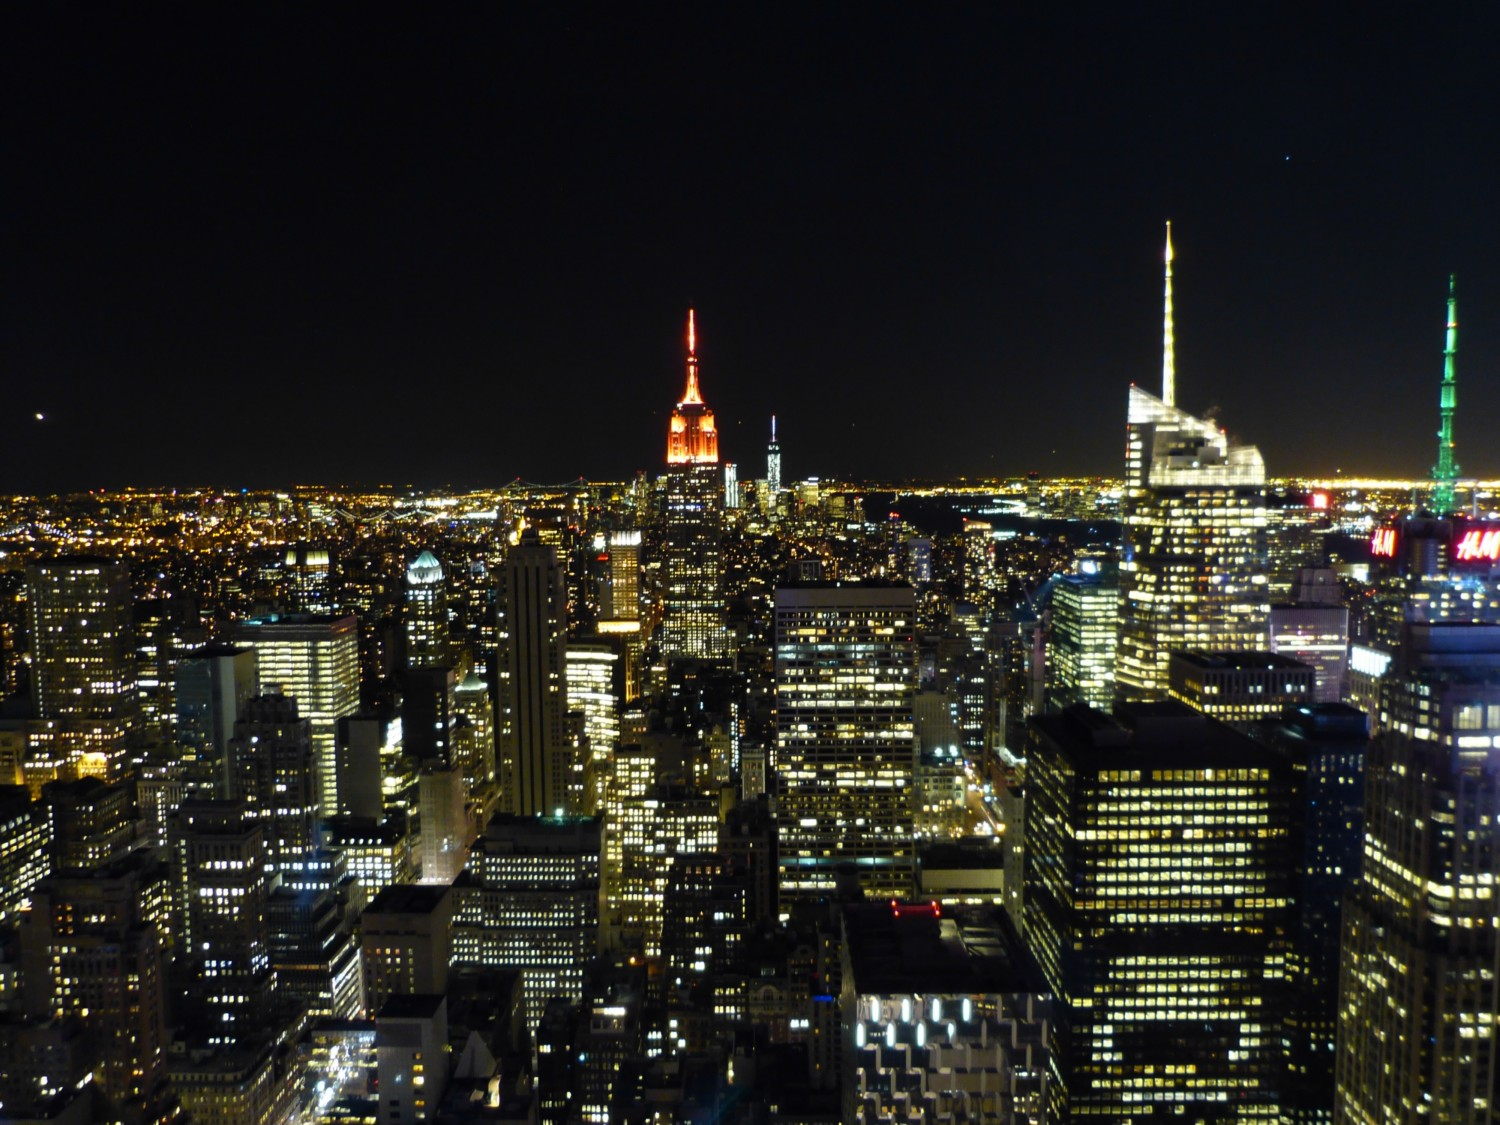 ausblick-manhatte-rockefeller-center-bei-nacht-new-york-city